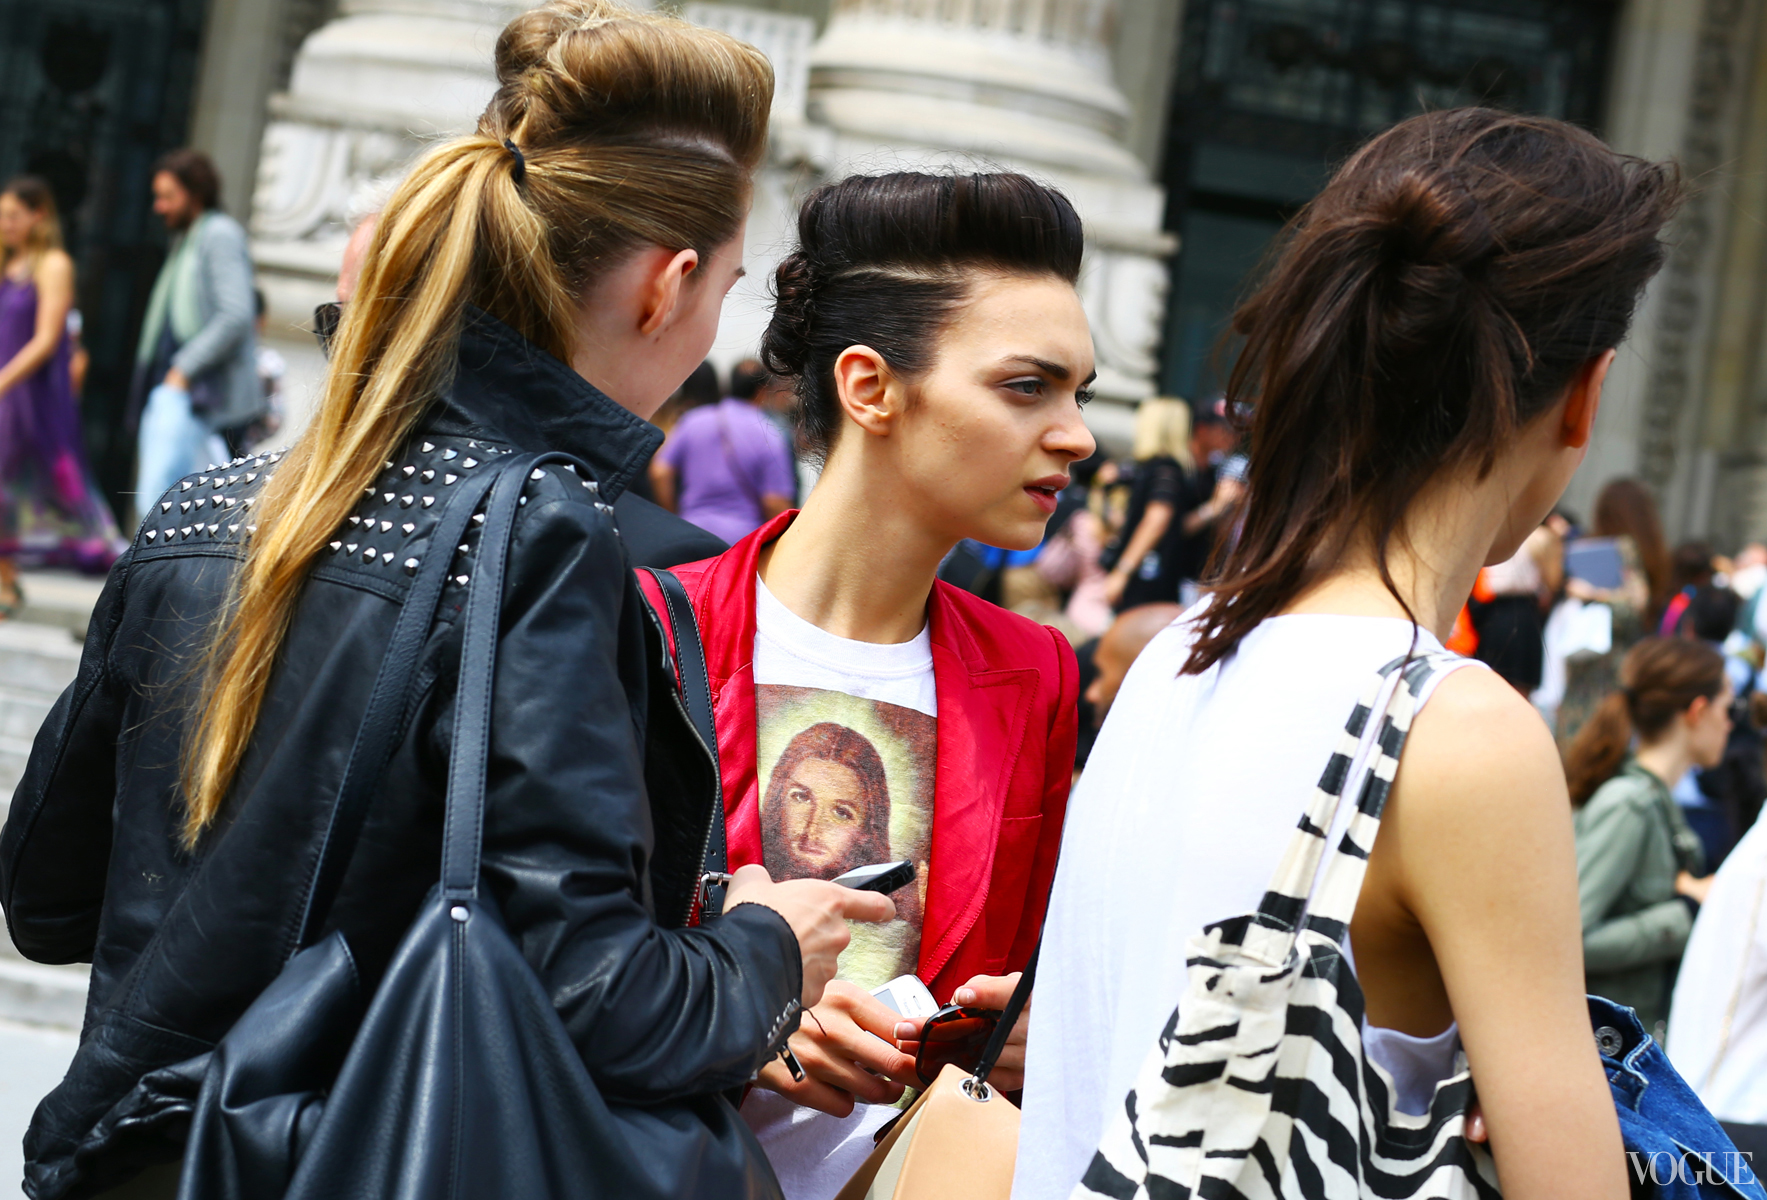 hairstyles street style Lets Talk Street Style At Fashion Week!